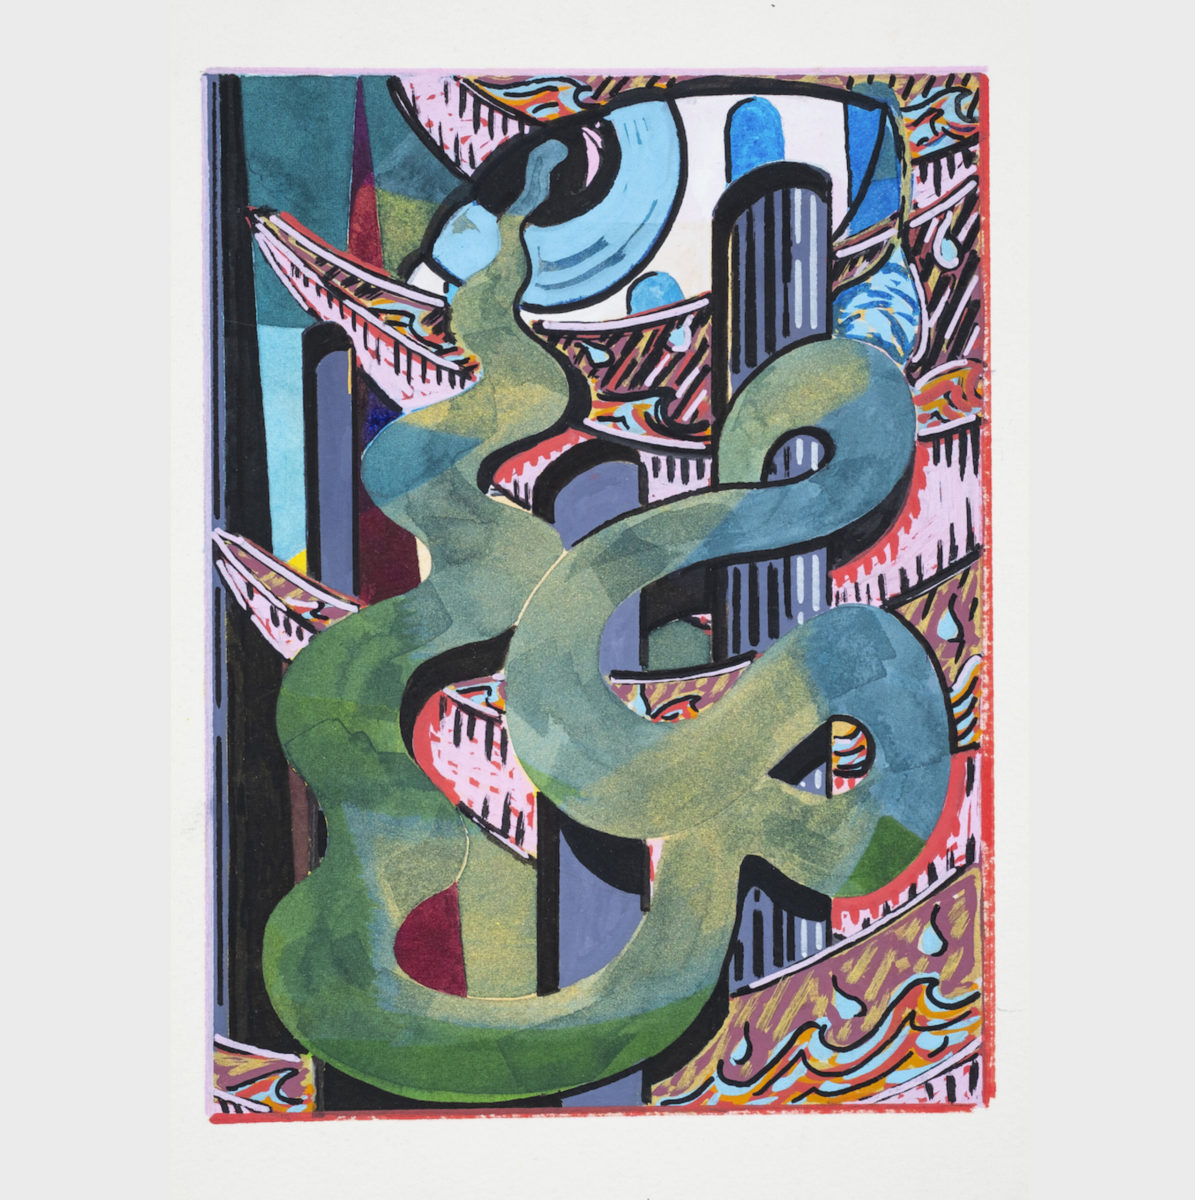 Anna Liber Lewis signed and limited edition print for Elephant Kiosk